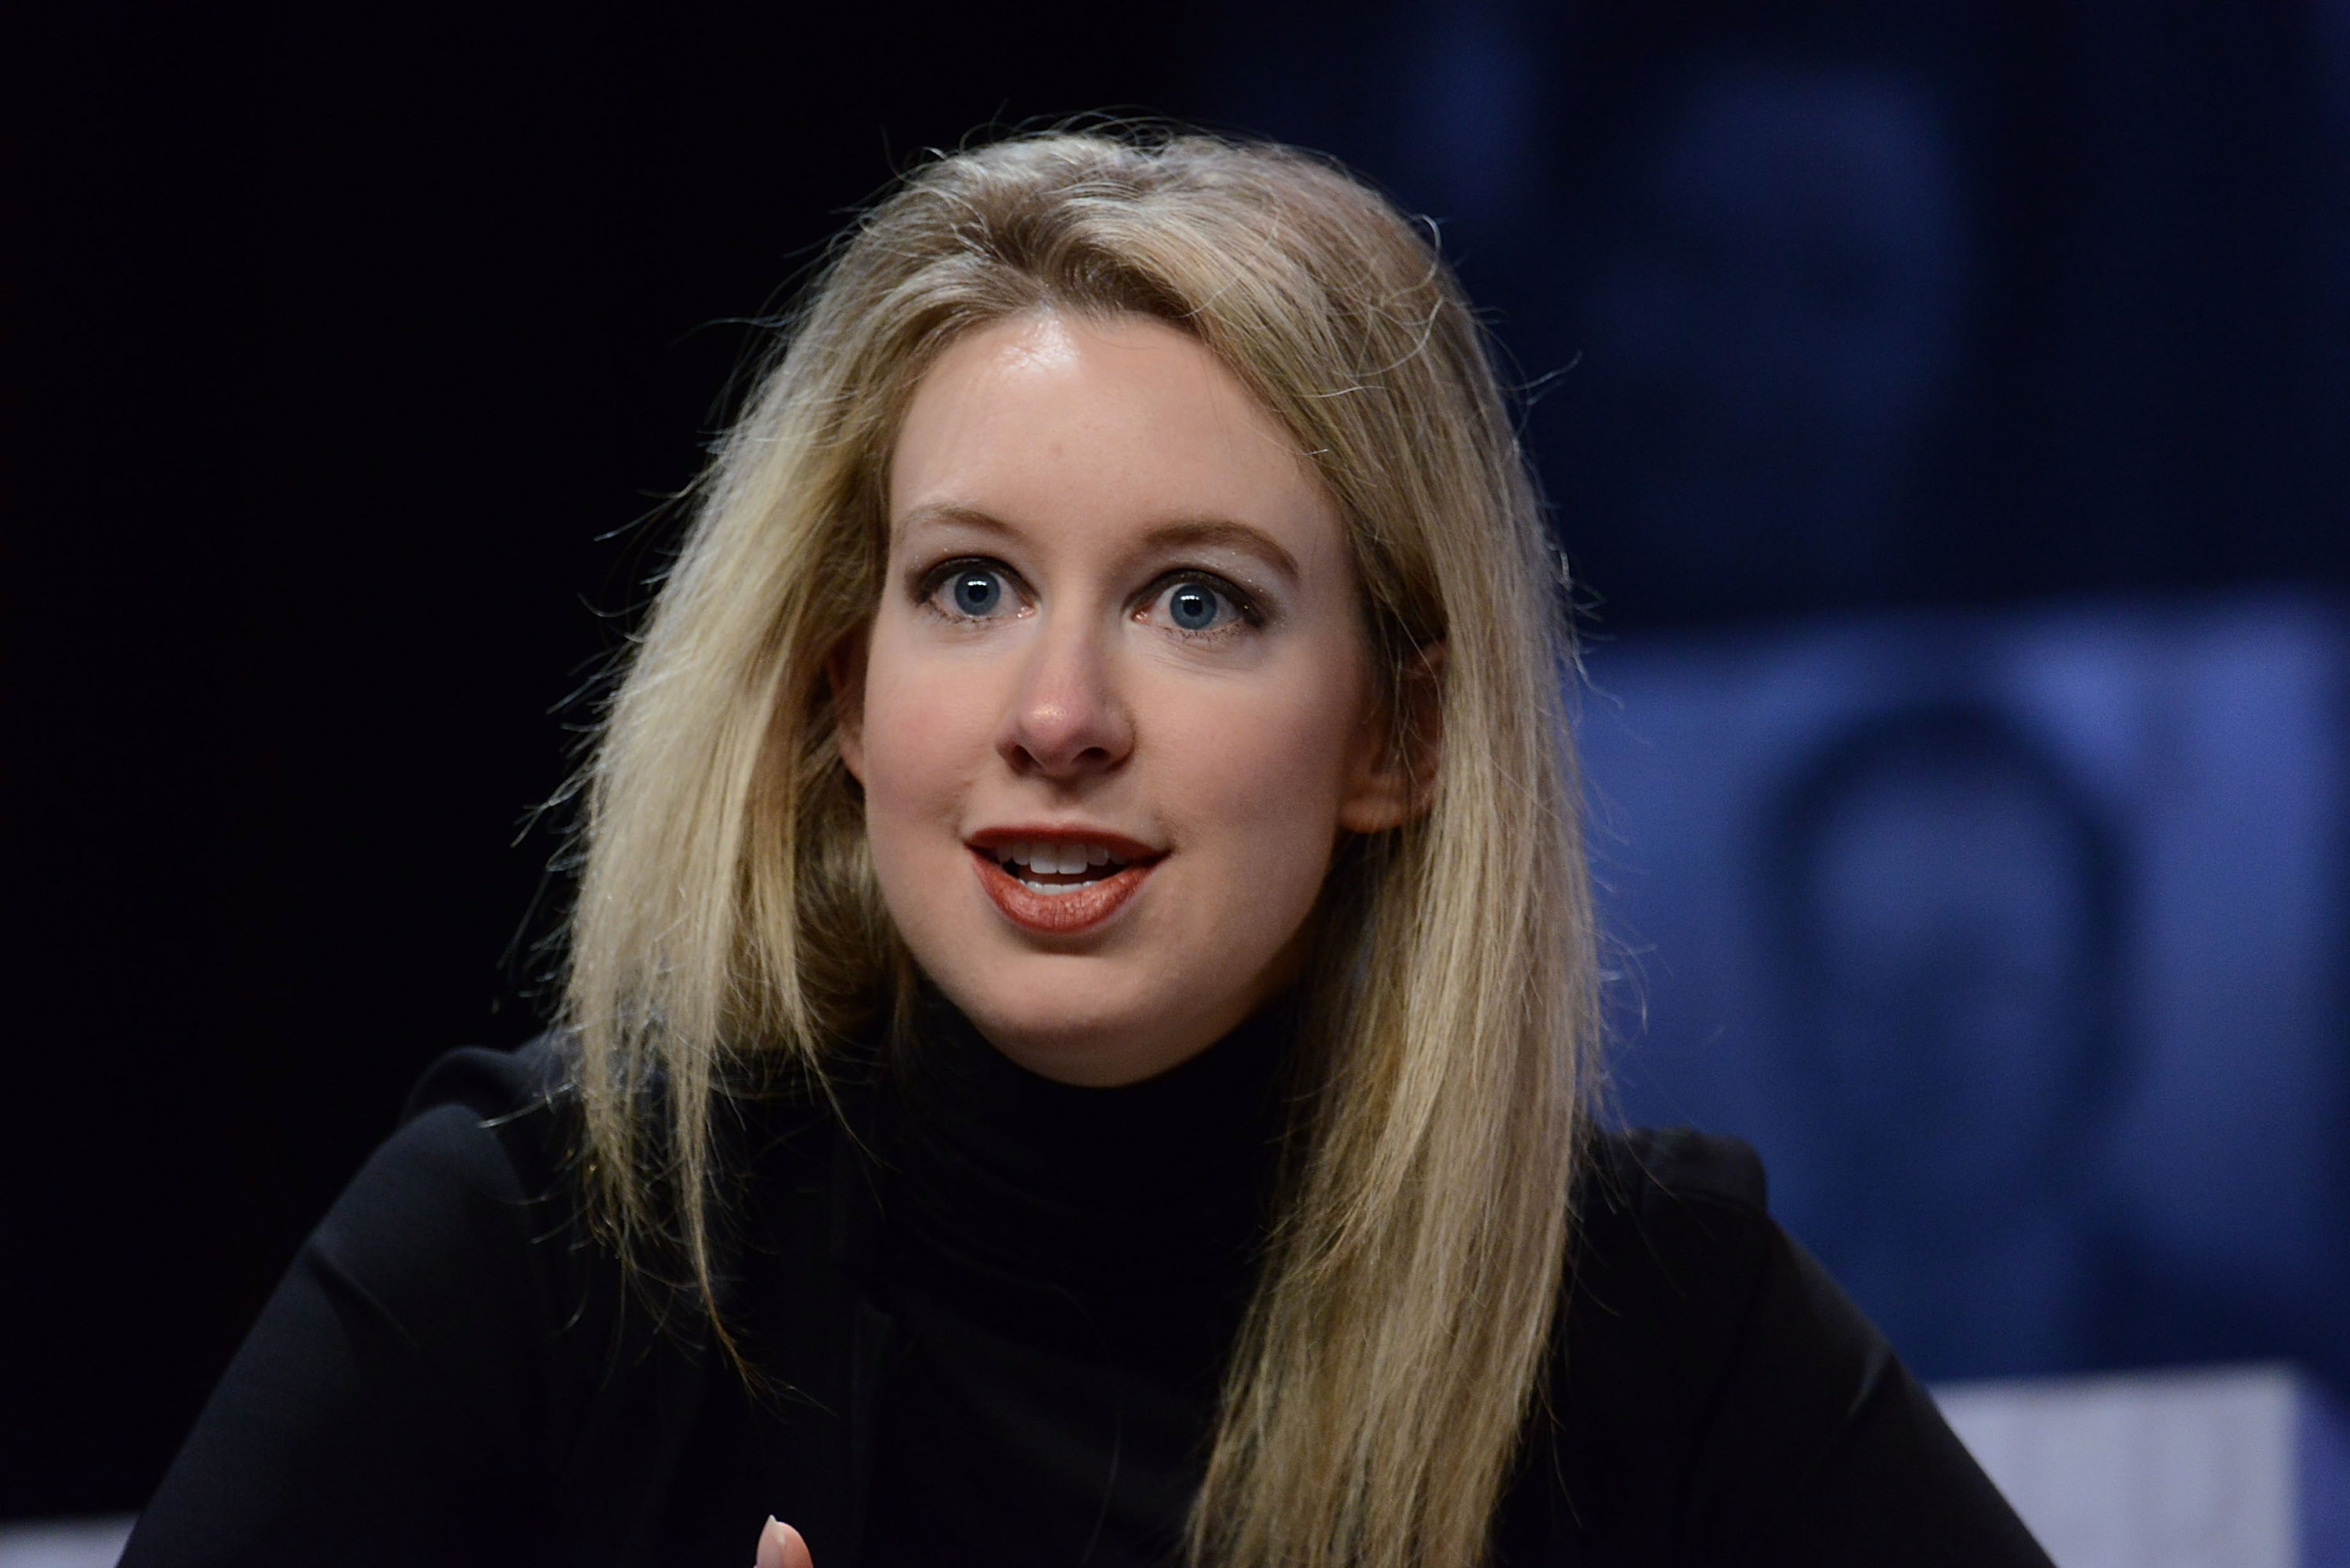 Theranos founder Elizabeth Holmes charged by US regulators with yearslong fraud